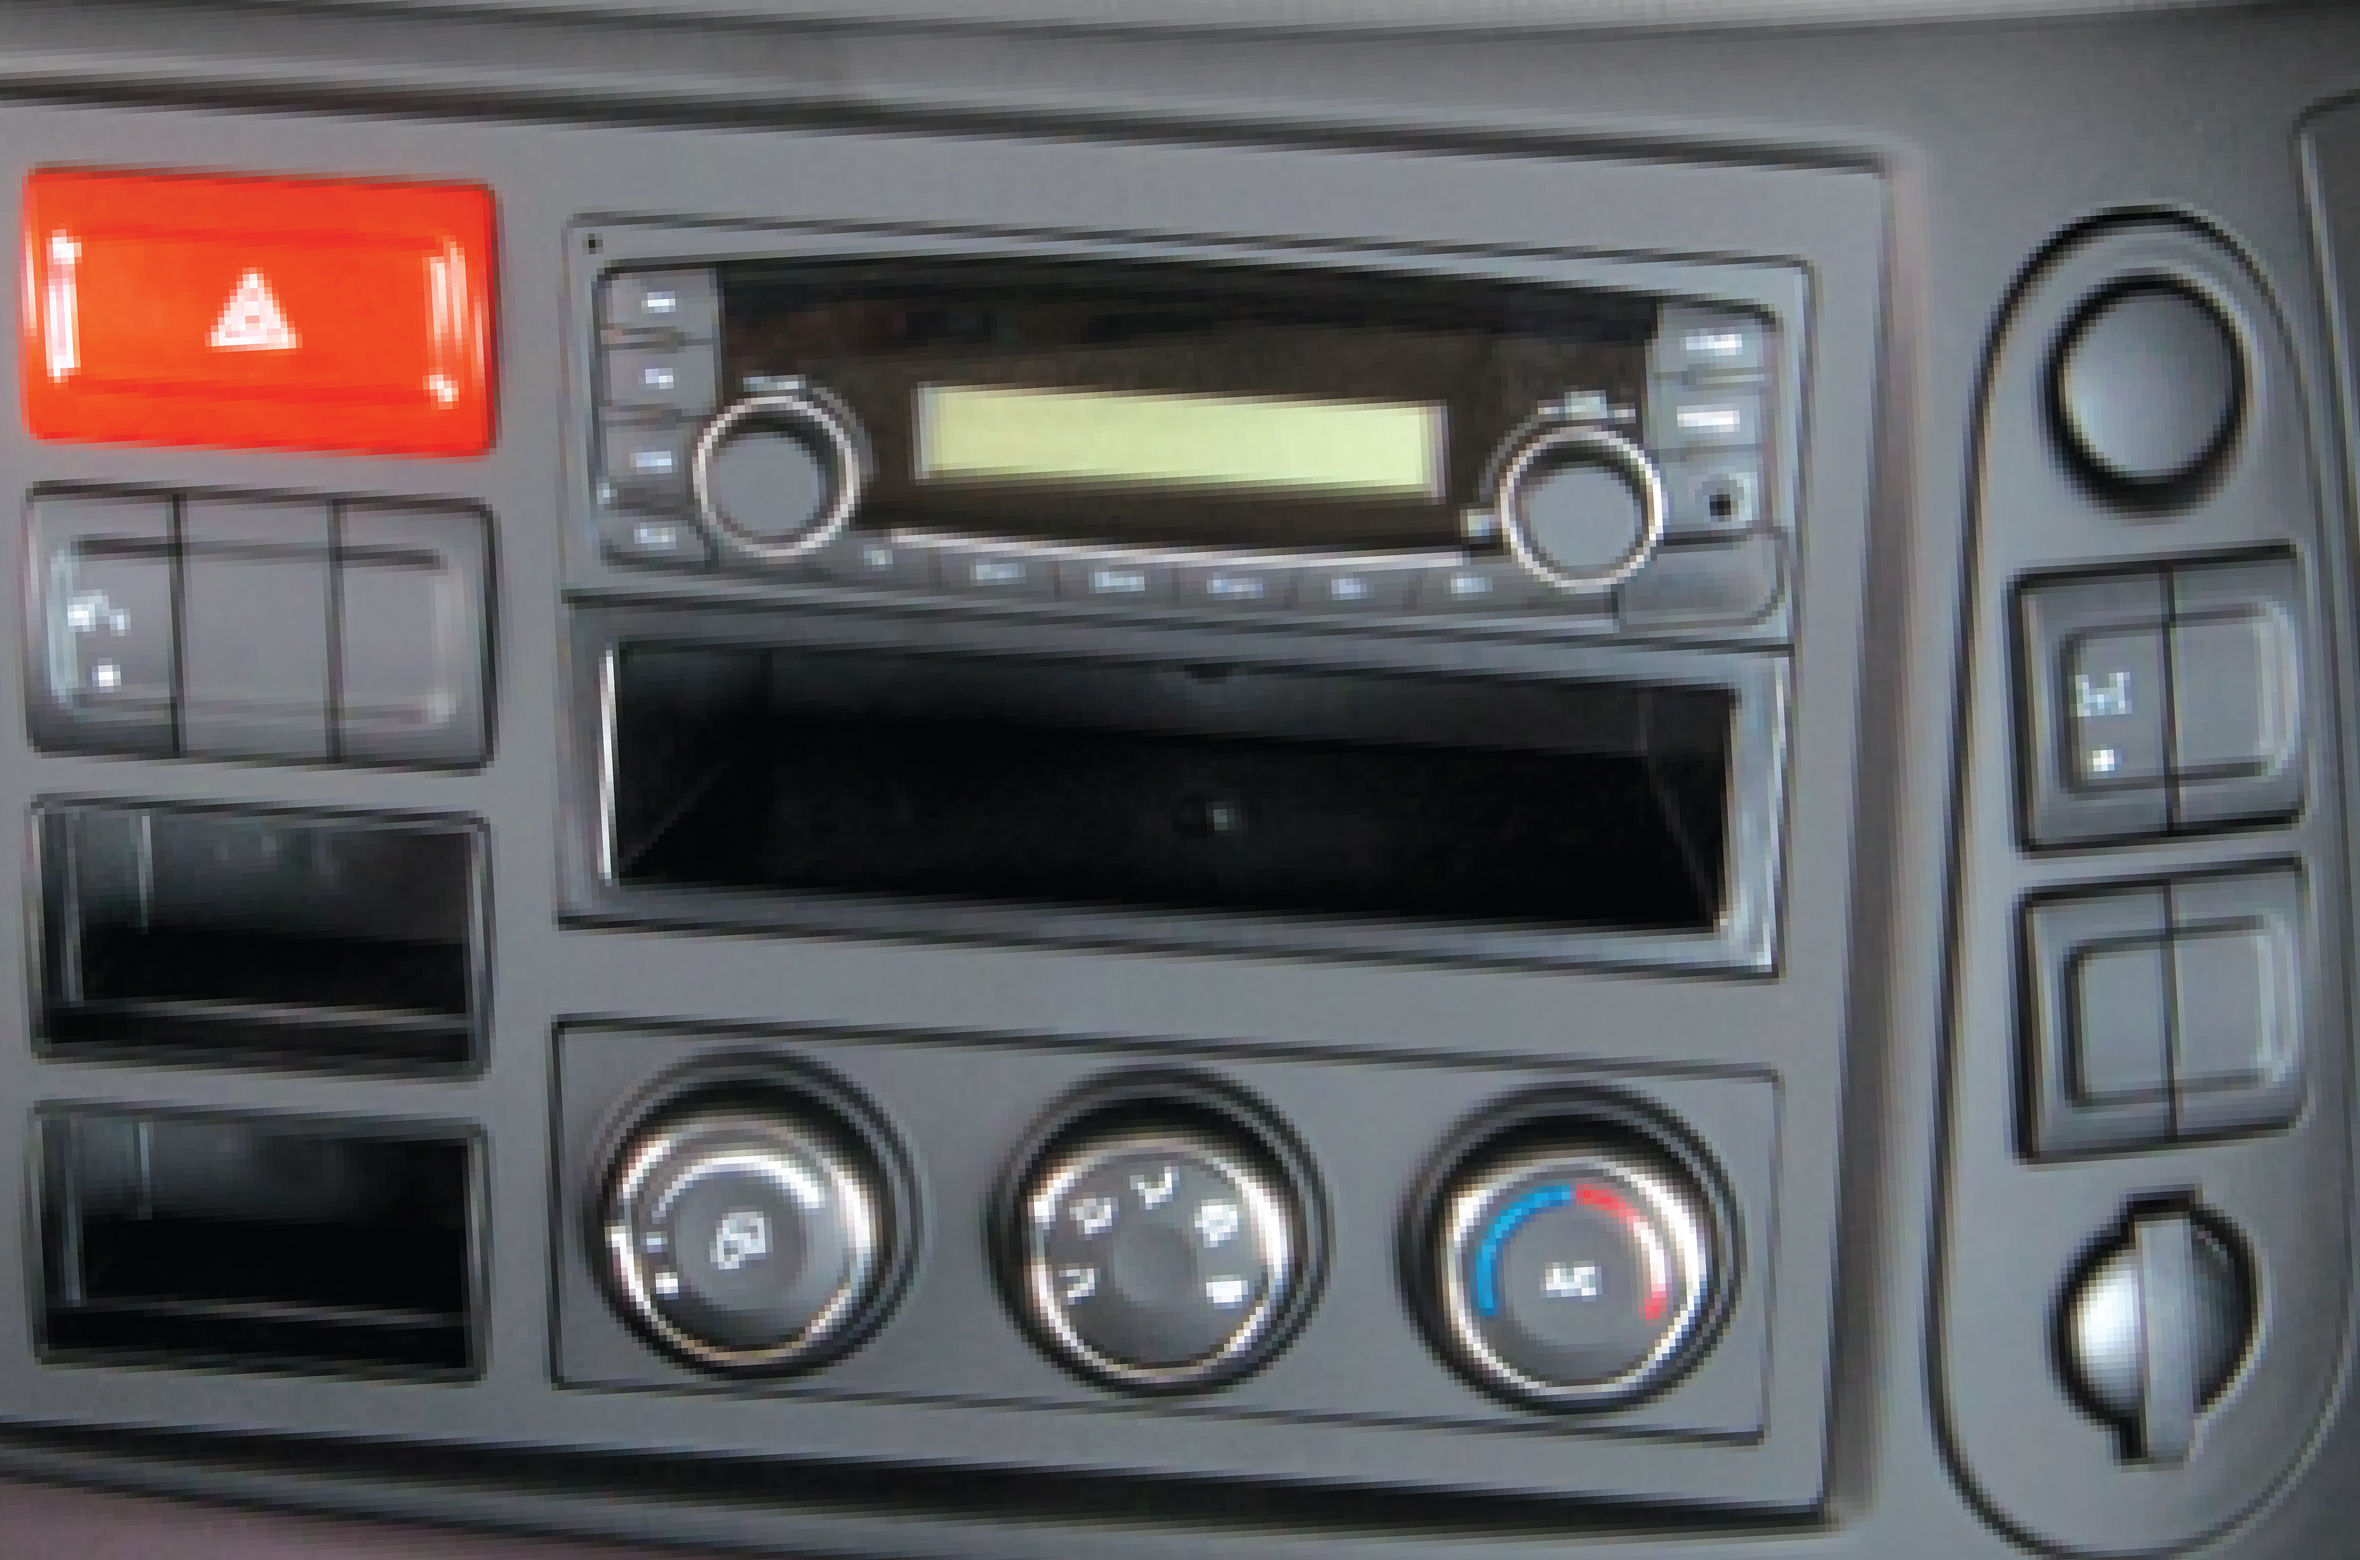 Radio, CD Player and Aircon Controller